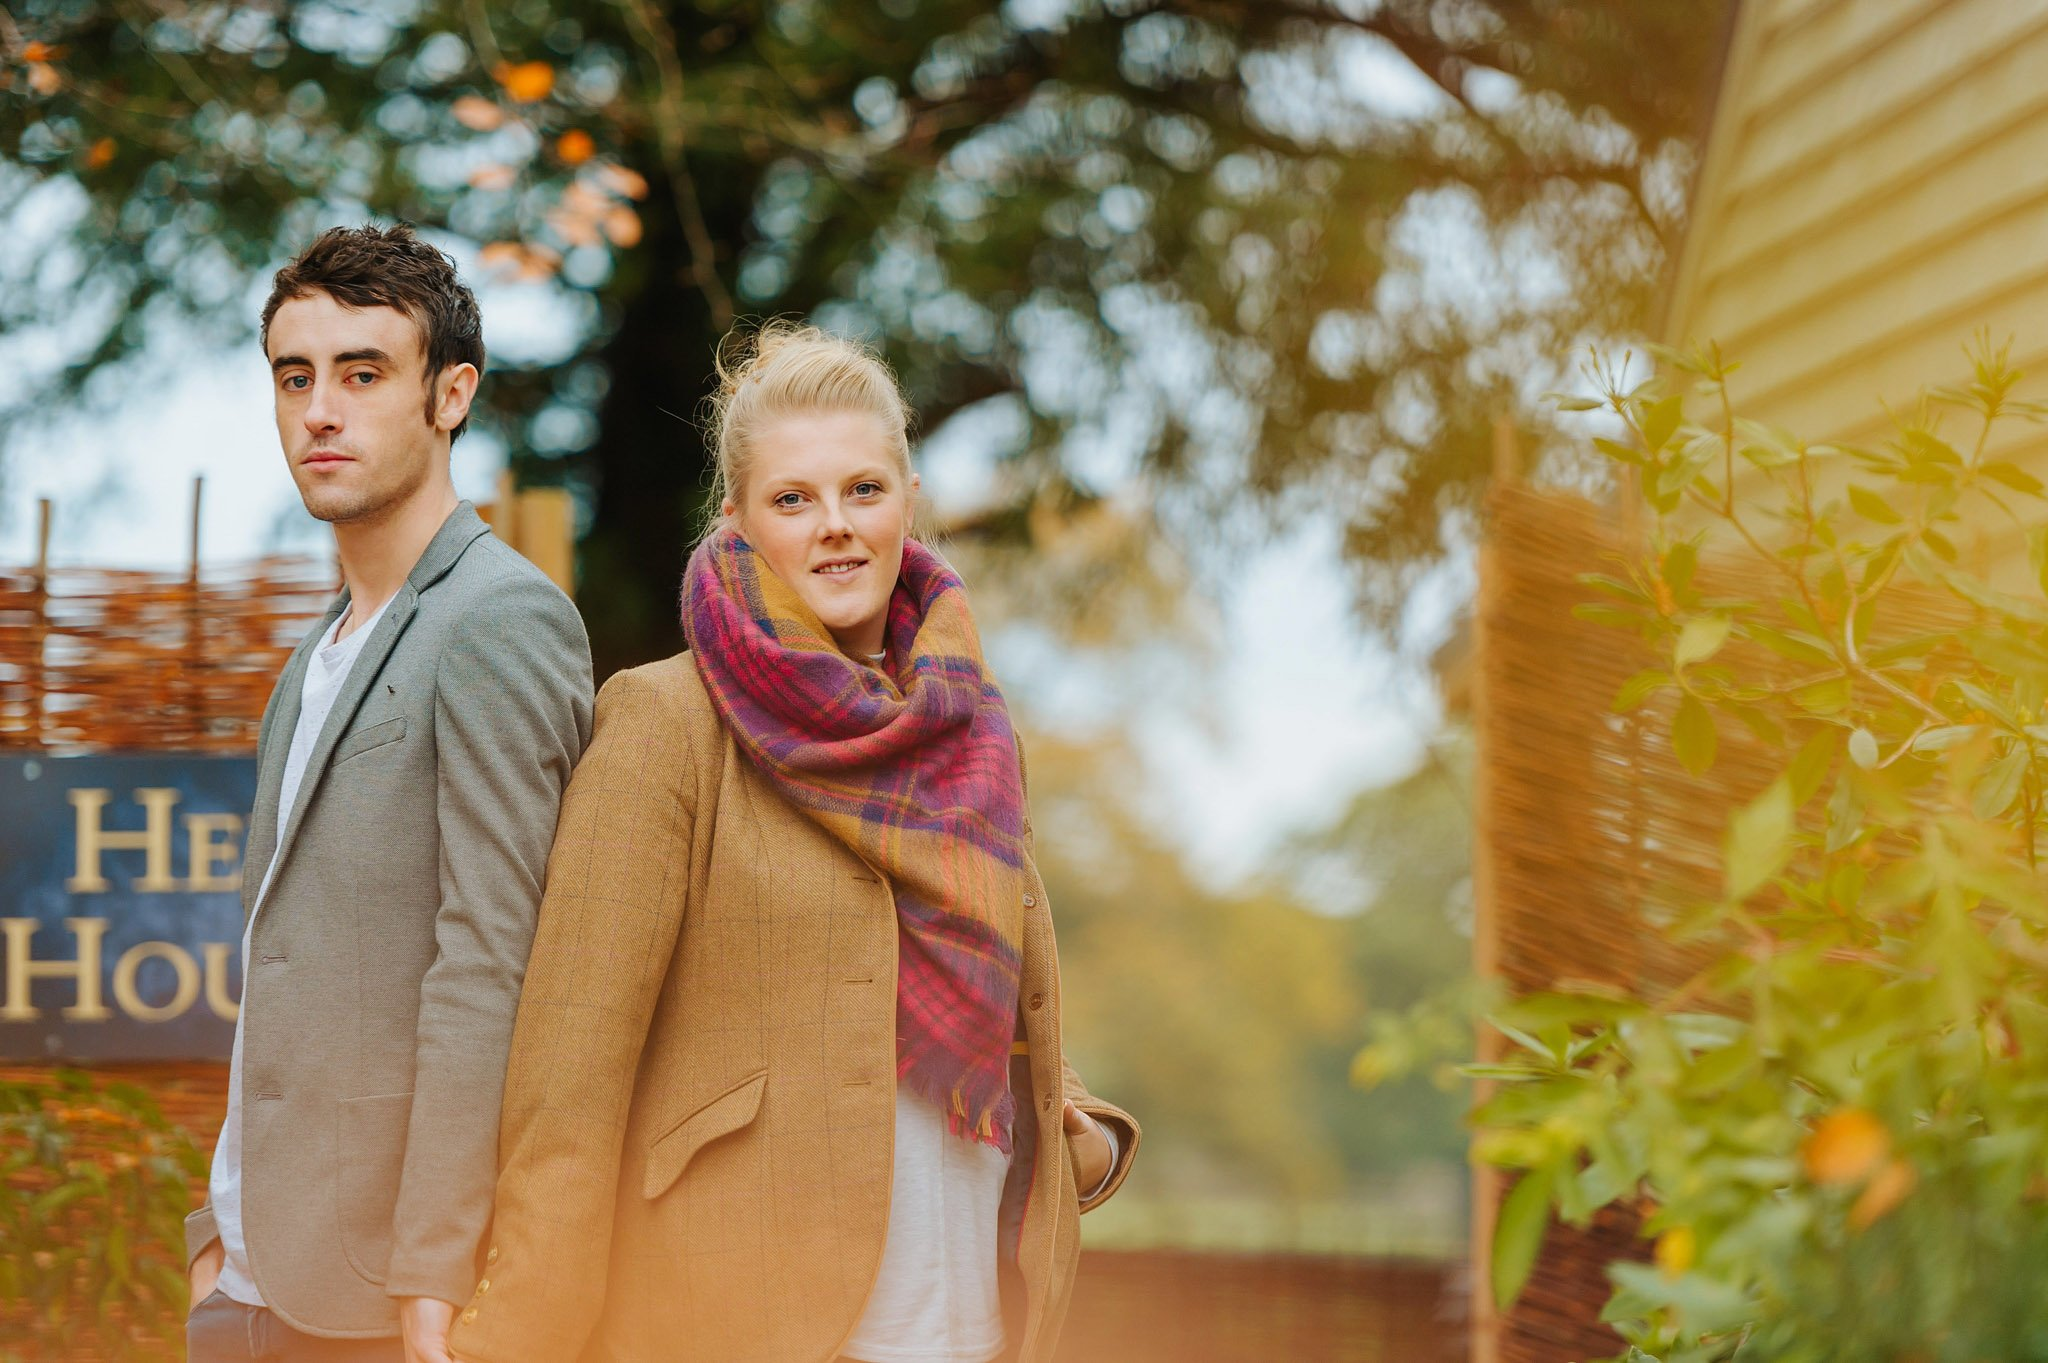 Becky + Marcus | Engagement session in Herefordshire 11